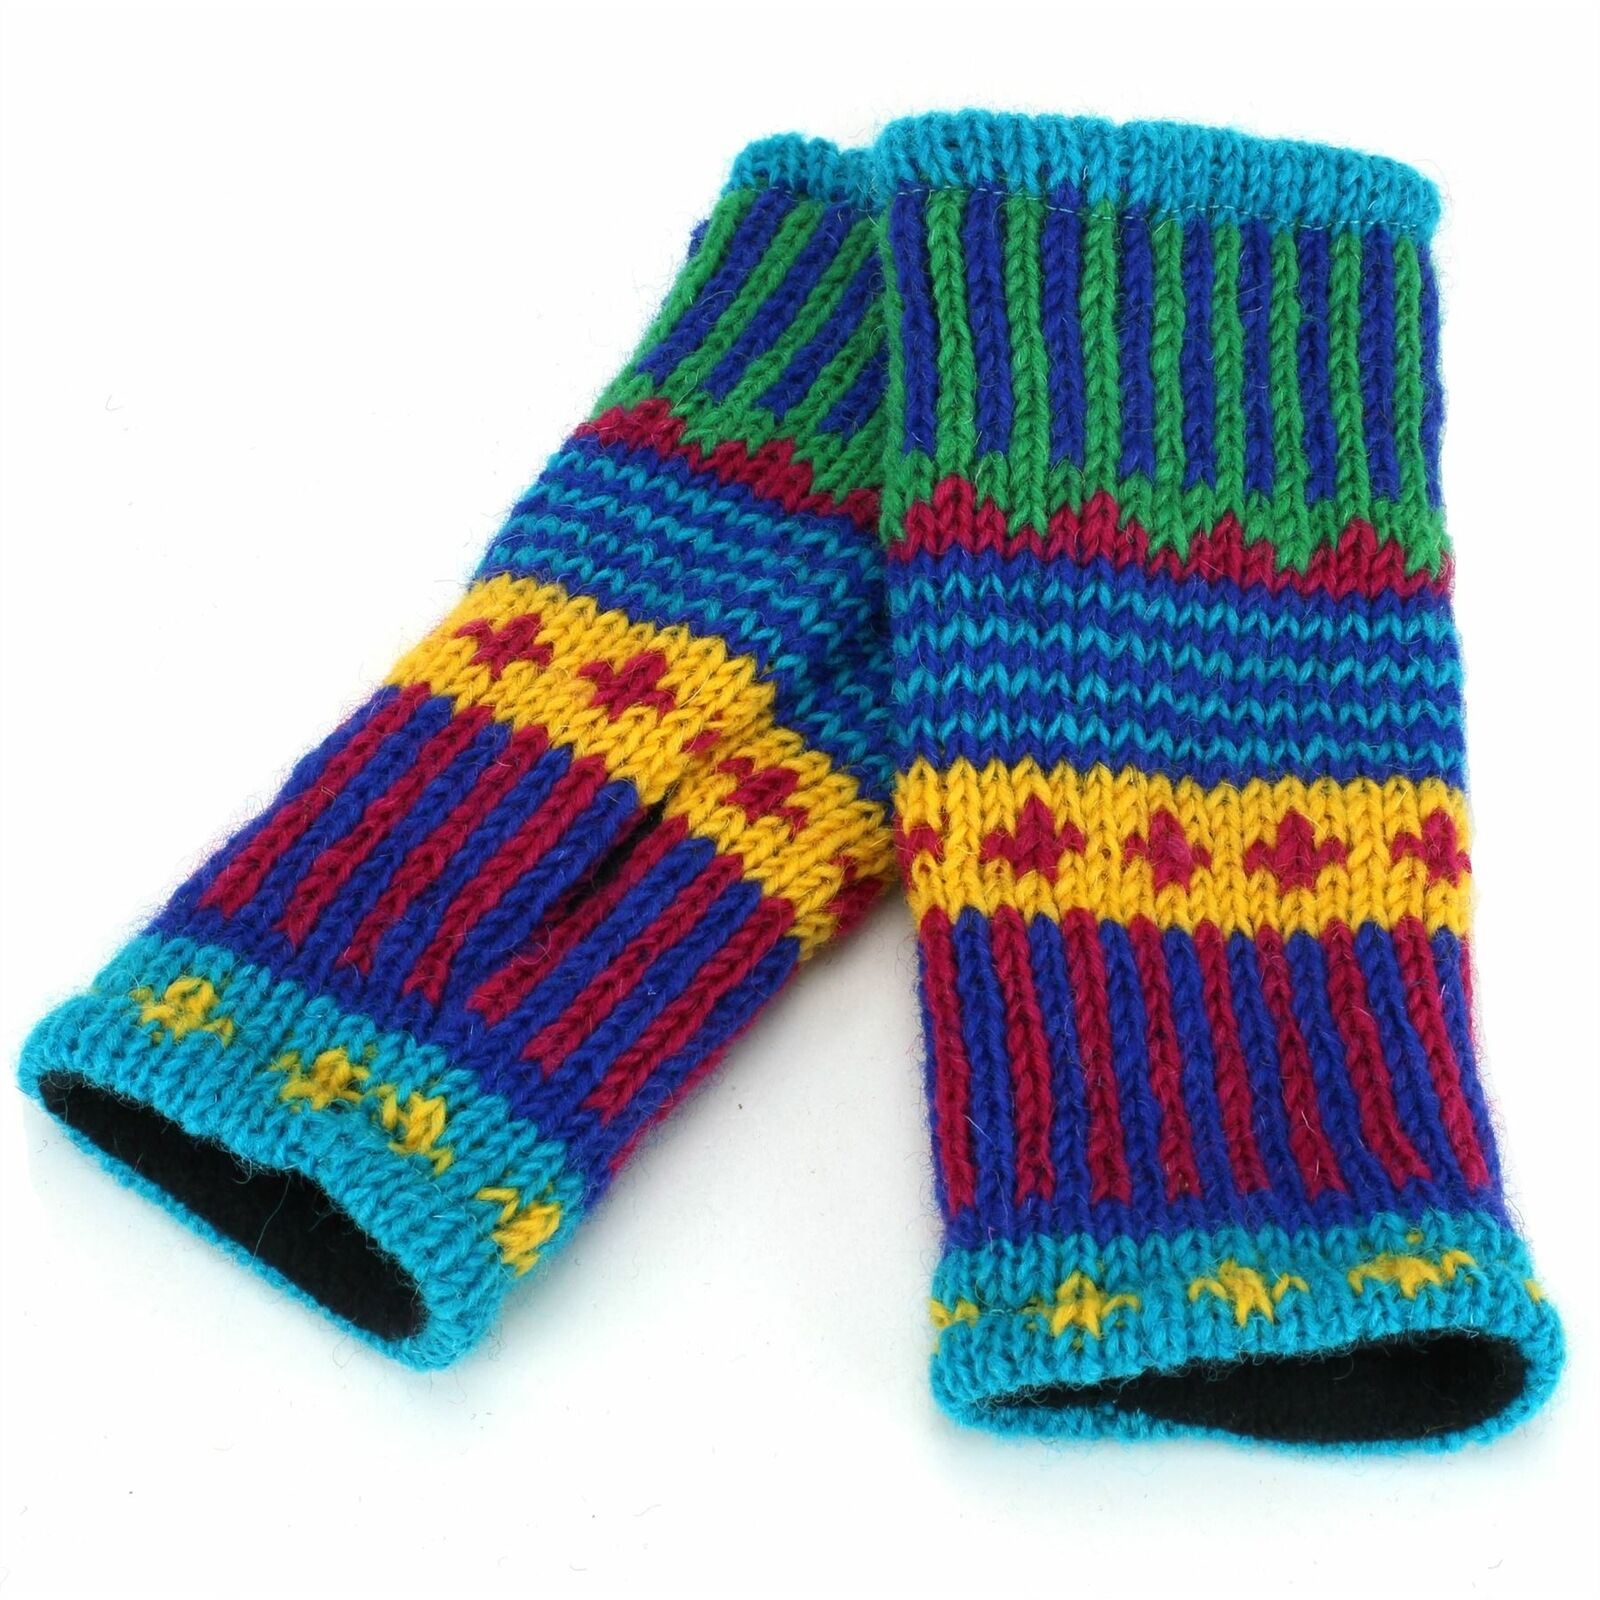 Wool Knit Arm Warmer Ministry of Colour Mittens Winter thumb shooting knitted